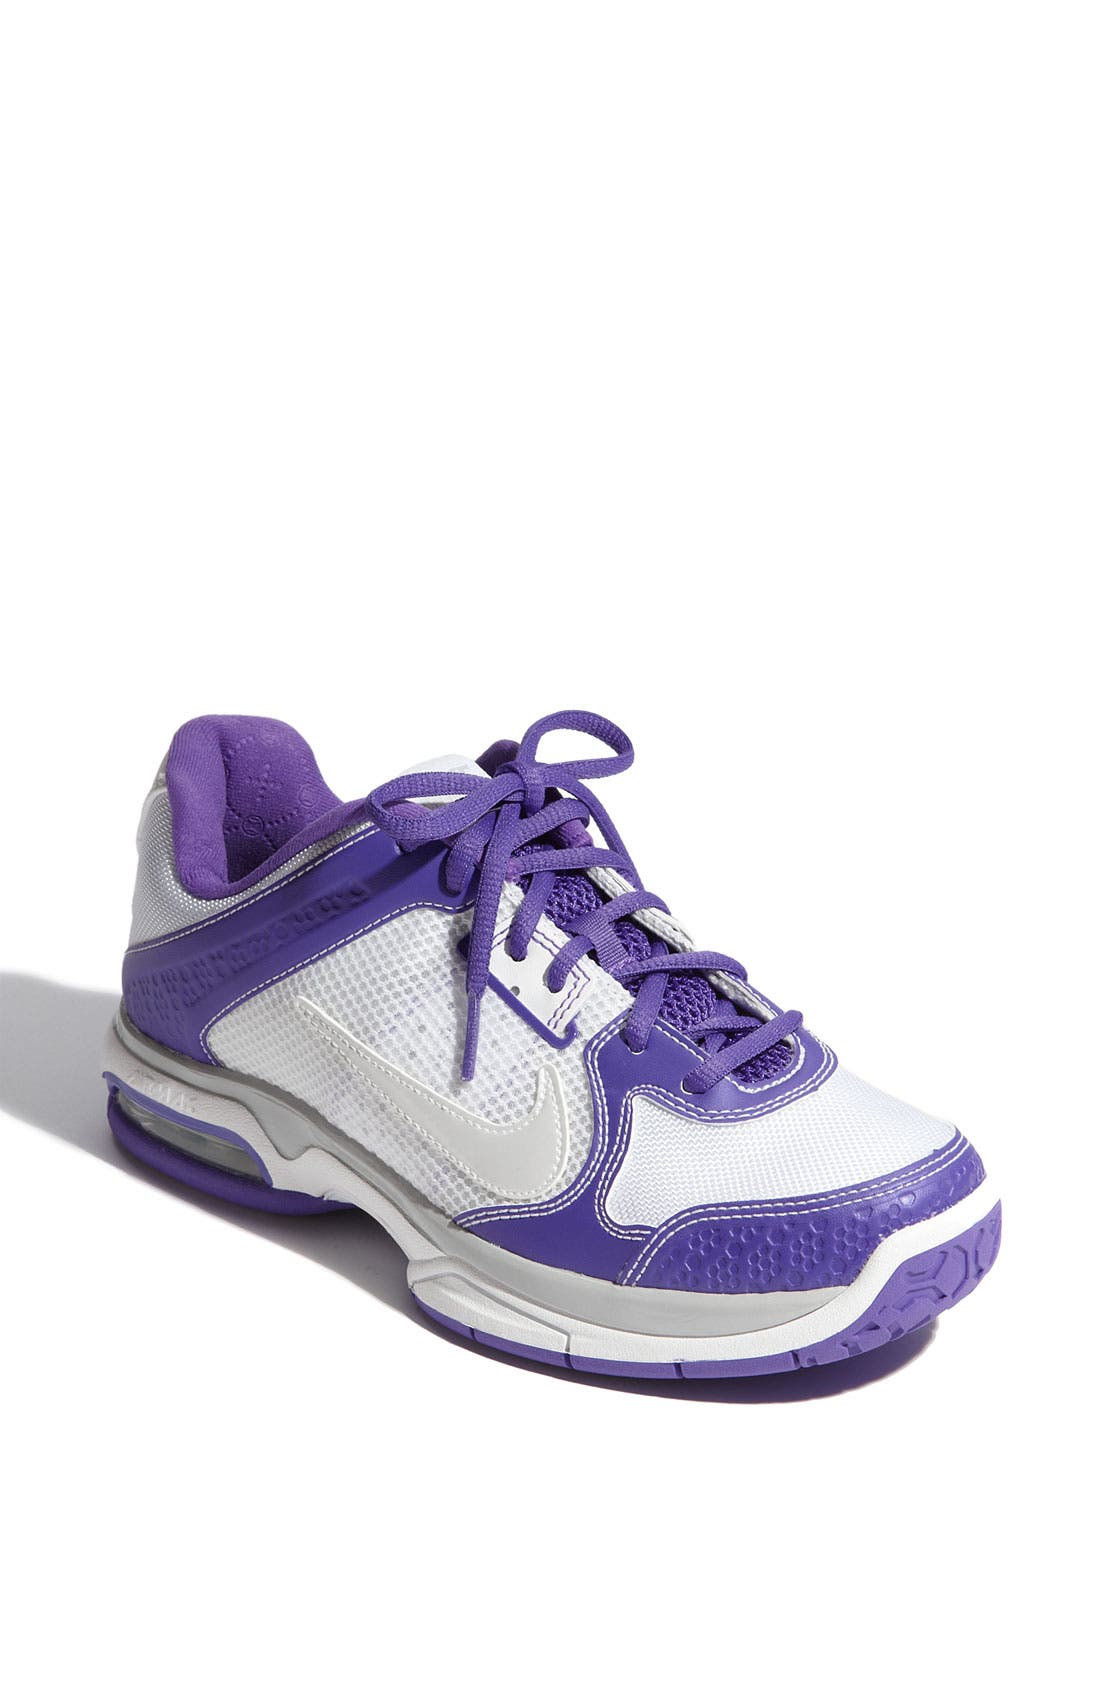 Alternate Image 1 Selected - Nike 'Air Max Mirabella 3' Tennis Shoe (Women)